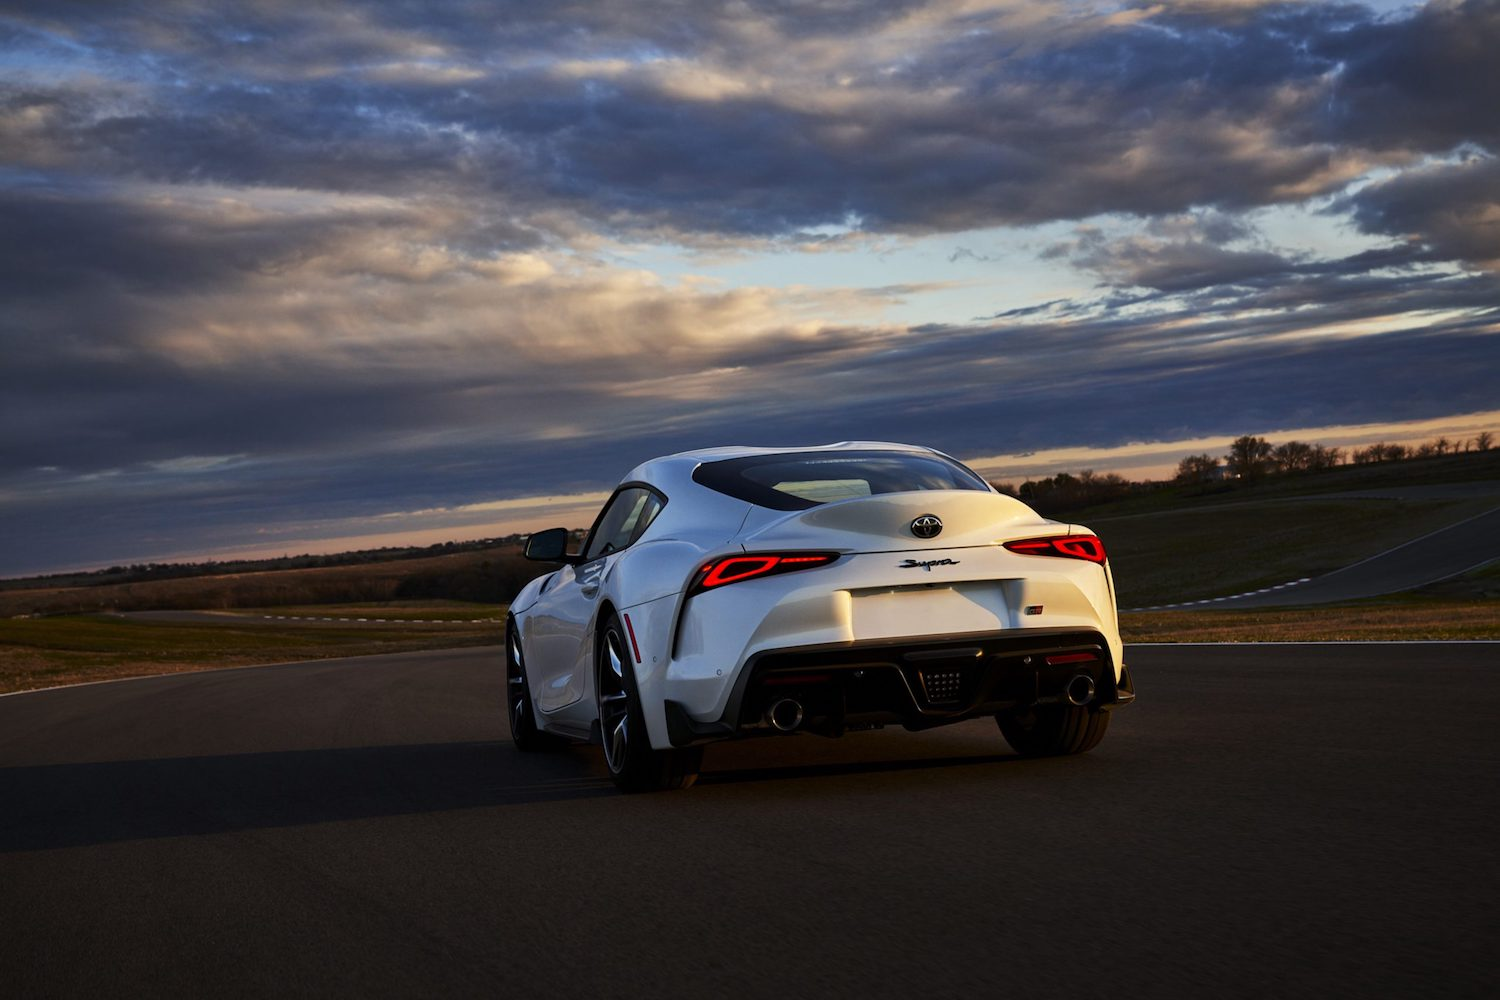 GR Supra 3.0 Premium rear on track action